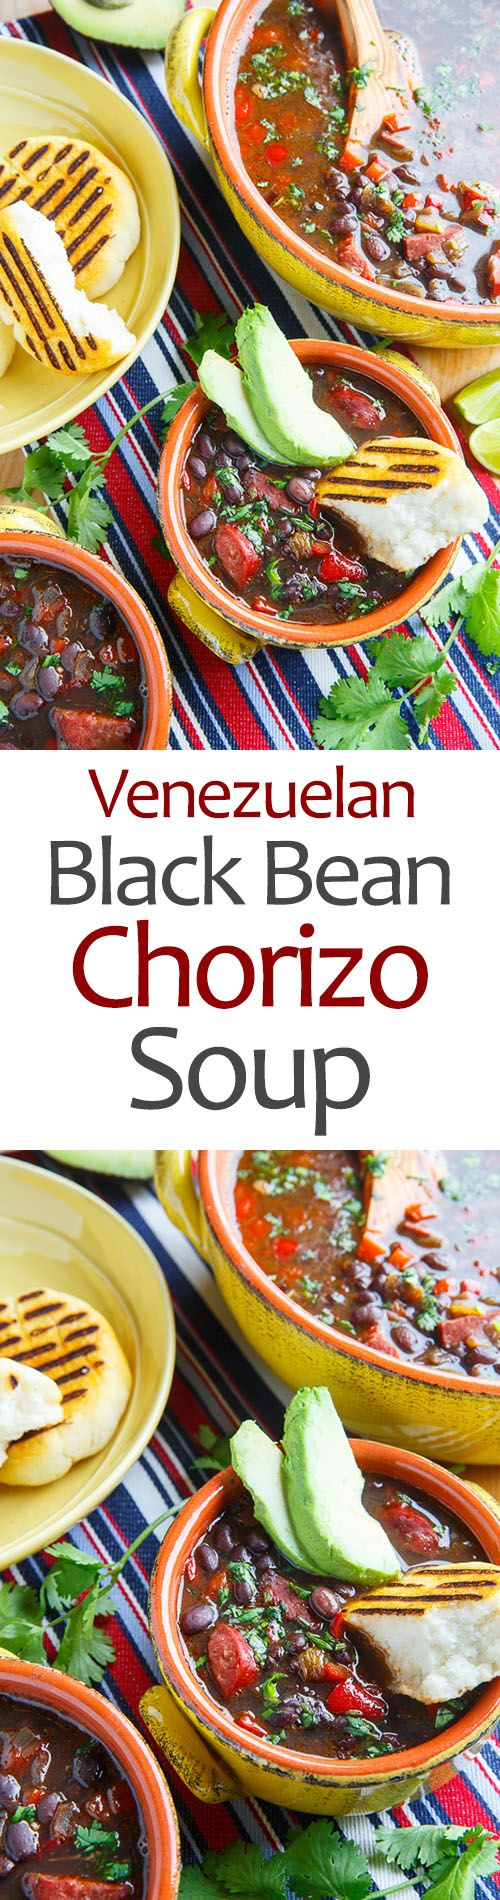 Venezuelan Black Bean and Chorizo Soup | - It definitely needs the splash of lime juice and the sweetness of the molasses. That adds the perfect umami to this soup.